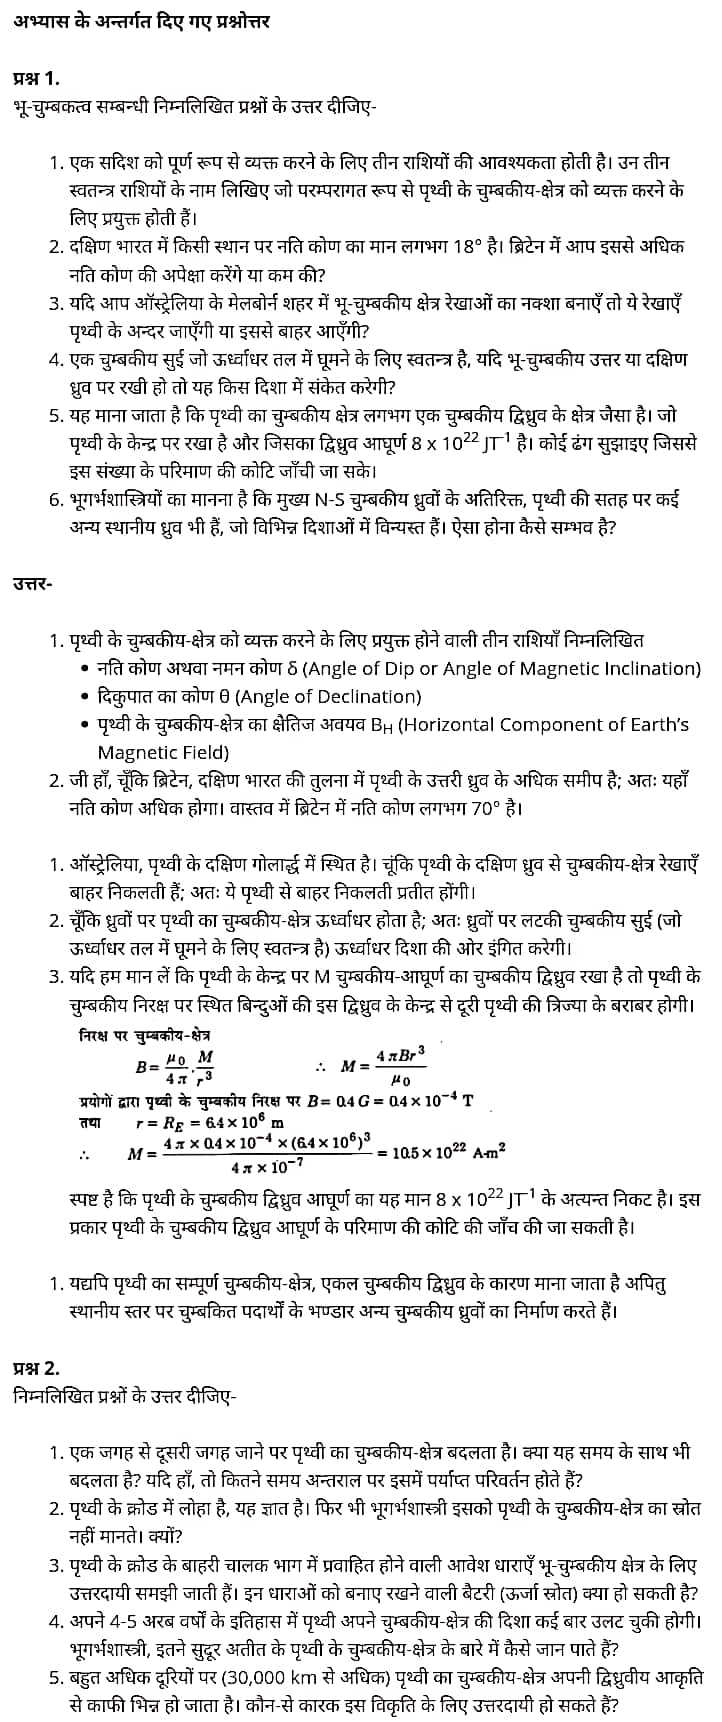 UP Board Solutions for Class 12 Physics Chapter 5 Magnetism and Matter